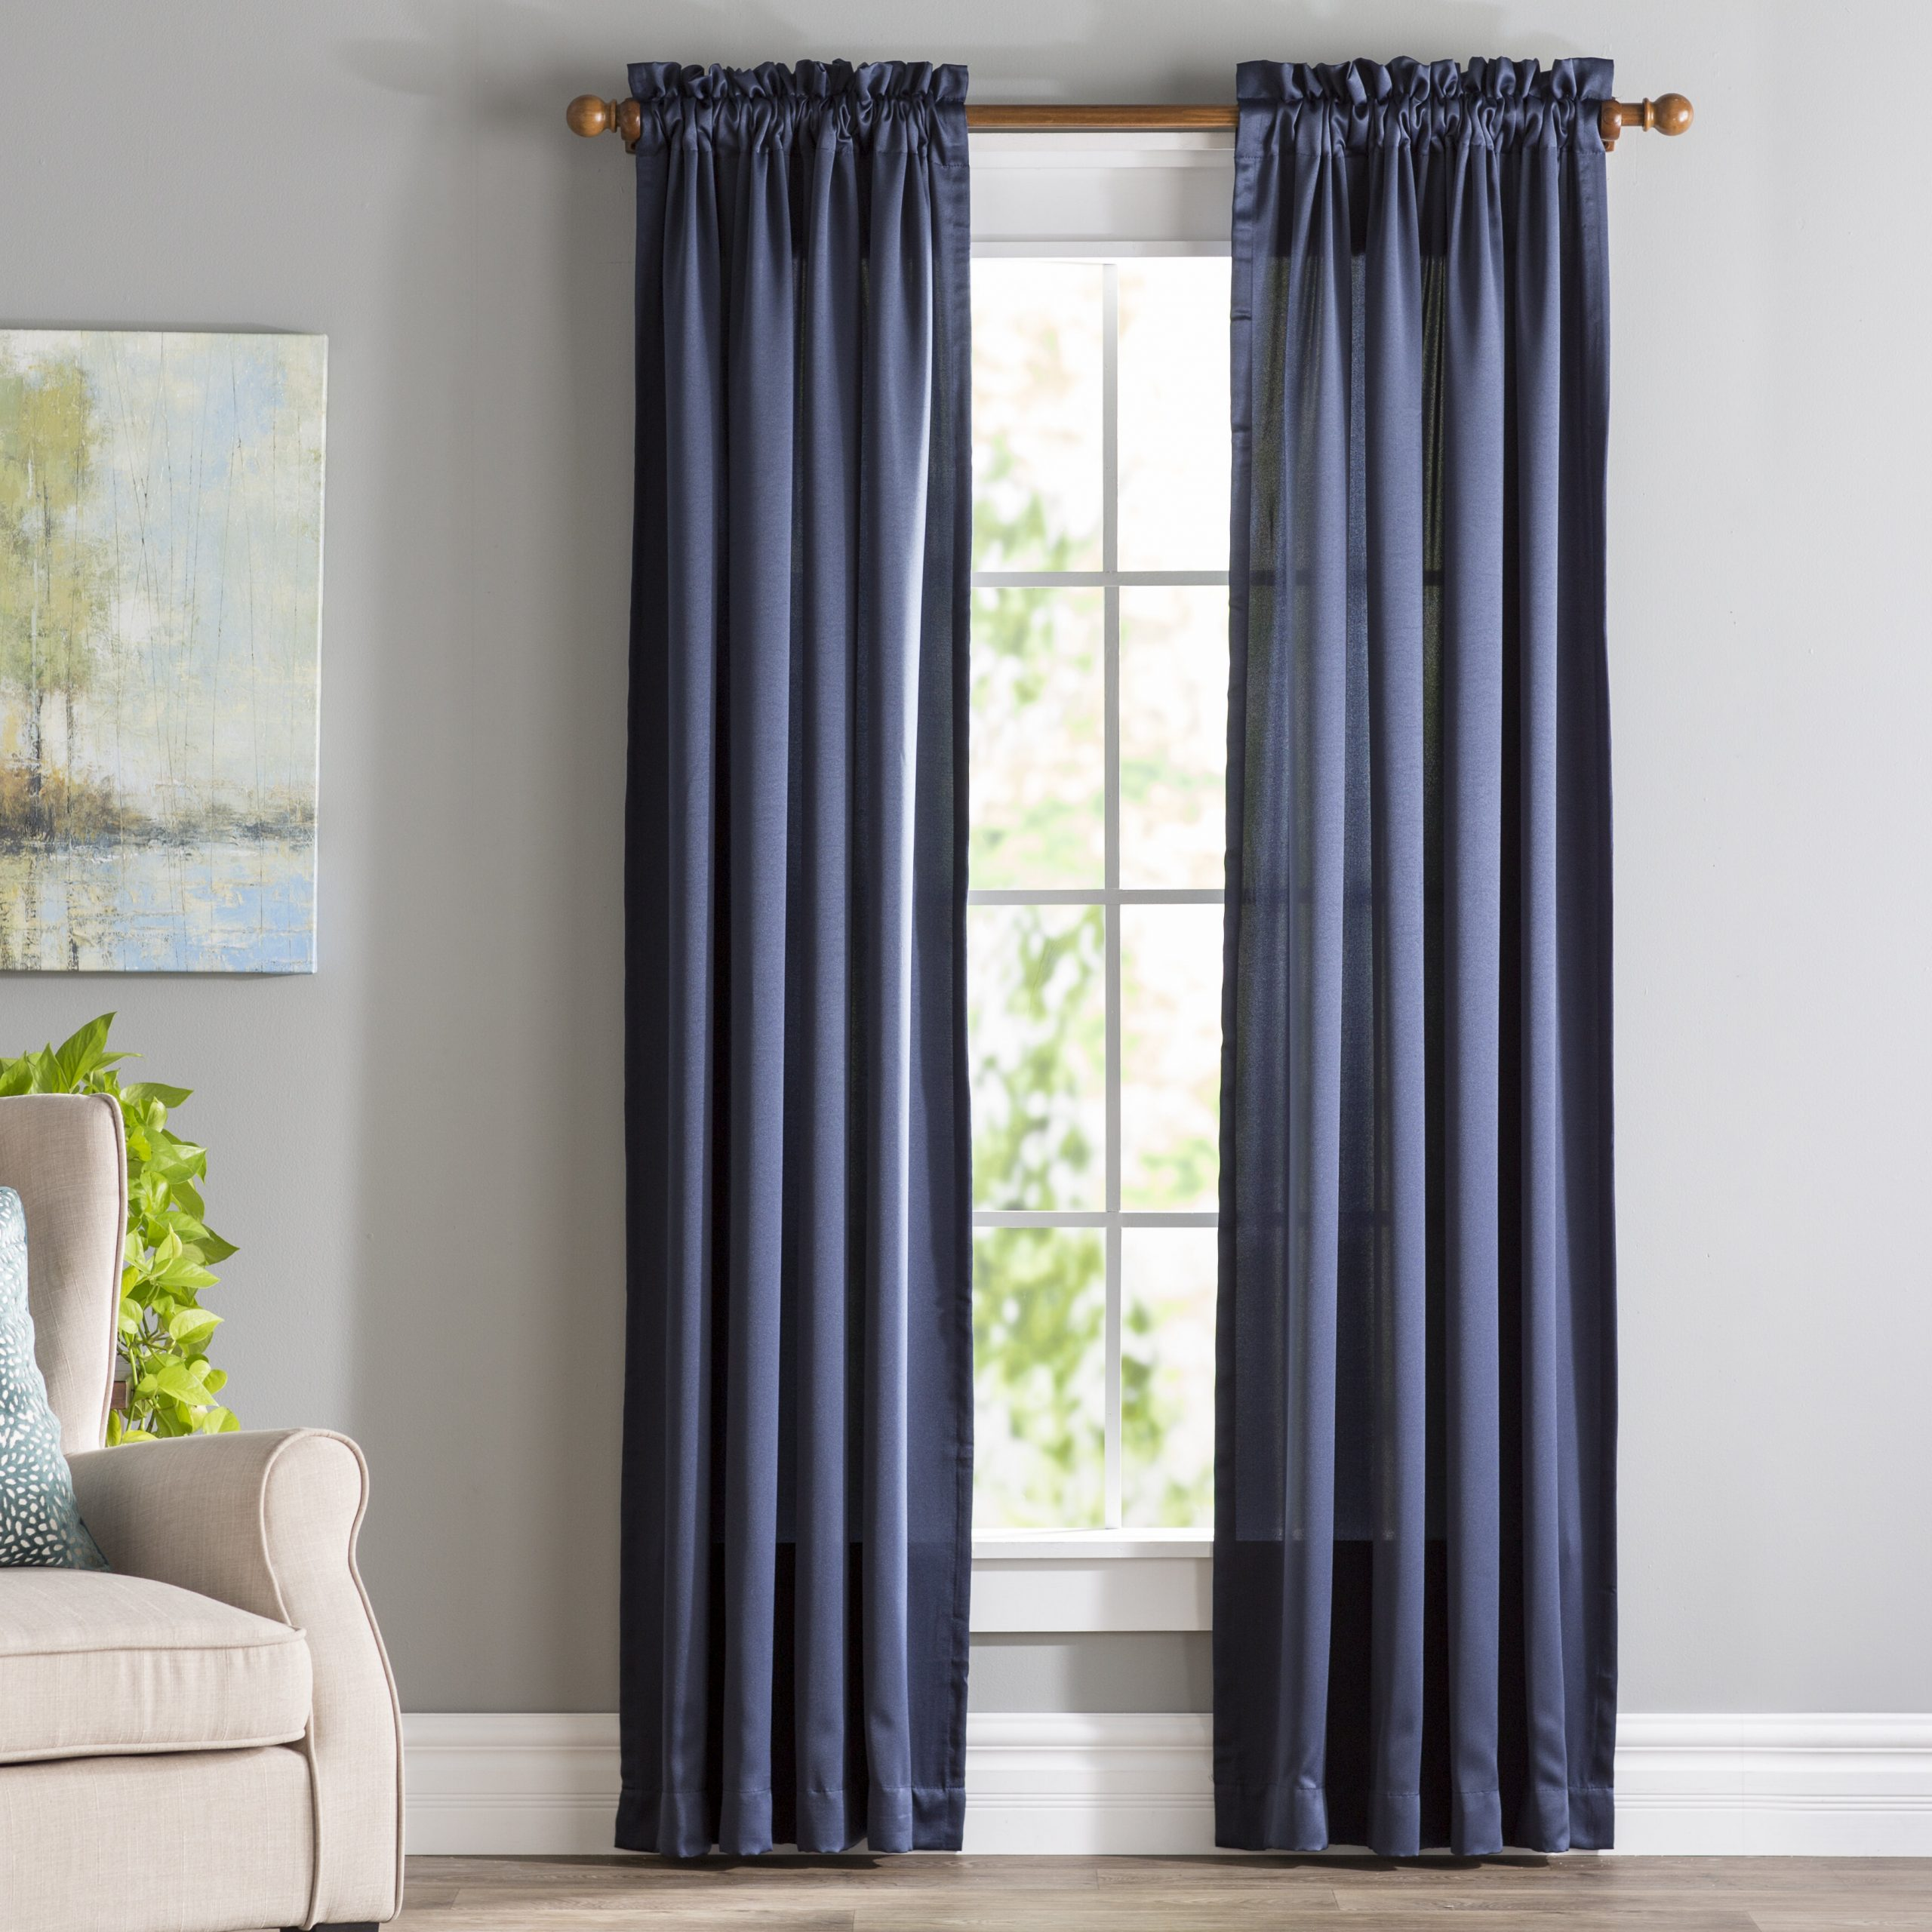 Most Recent Wayfair Basics Solid Room Darkening Rod Pocket Single Curtain Panel Inside Single Curtain Panels (View 2 of 20)